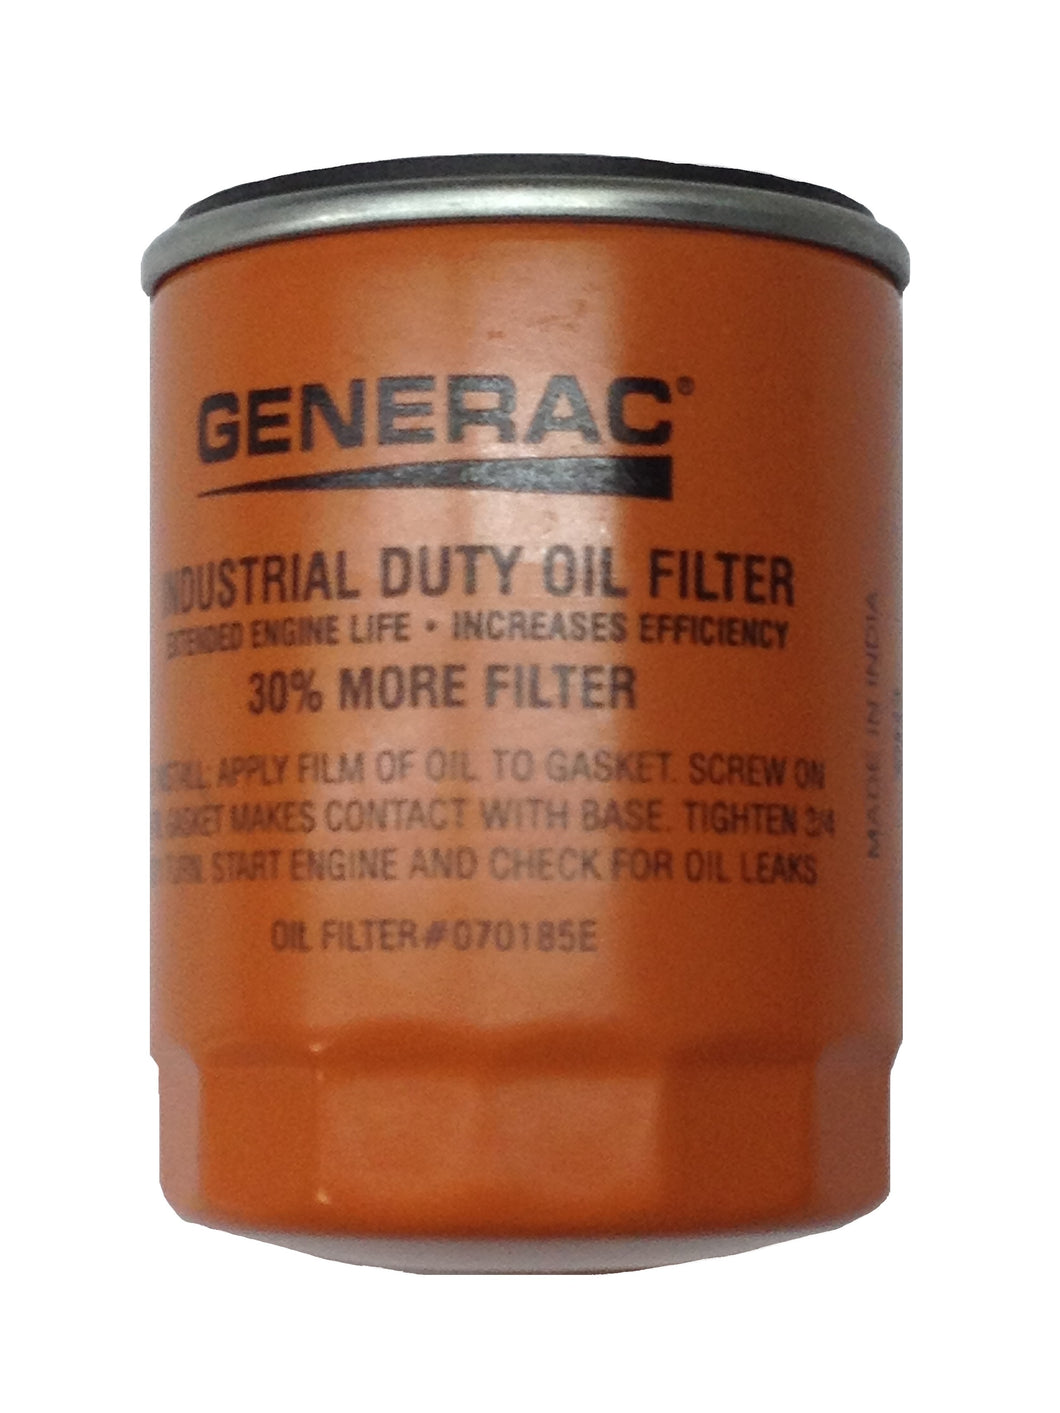 Generac 90 Pack Of 070185ES Oil Filter Part# 070185E90PK